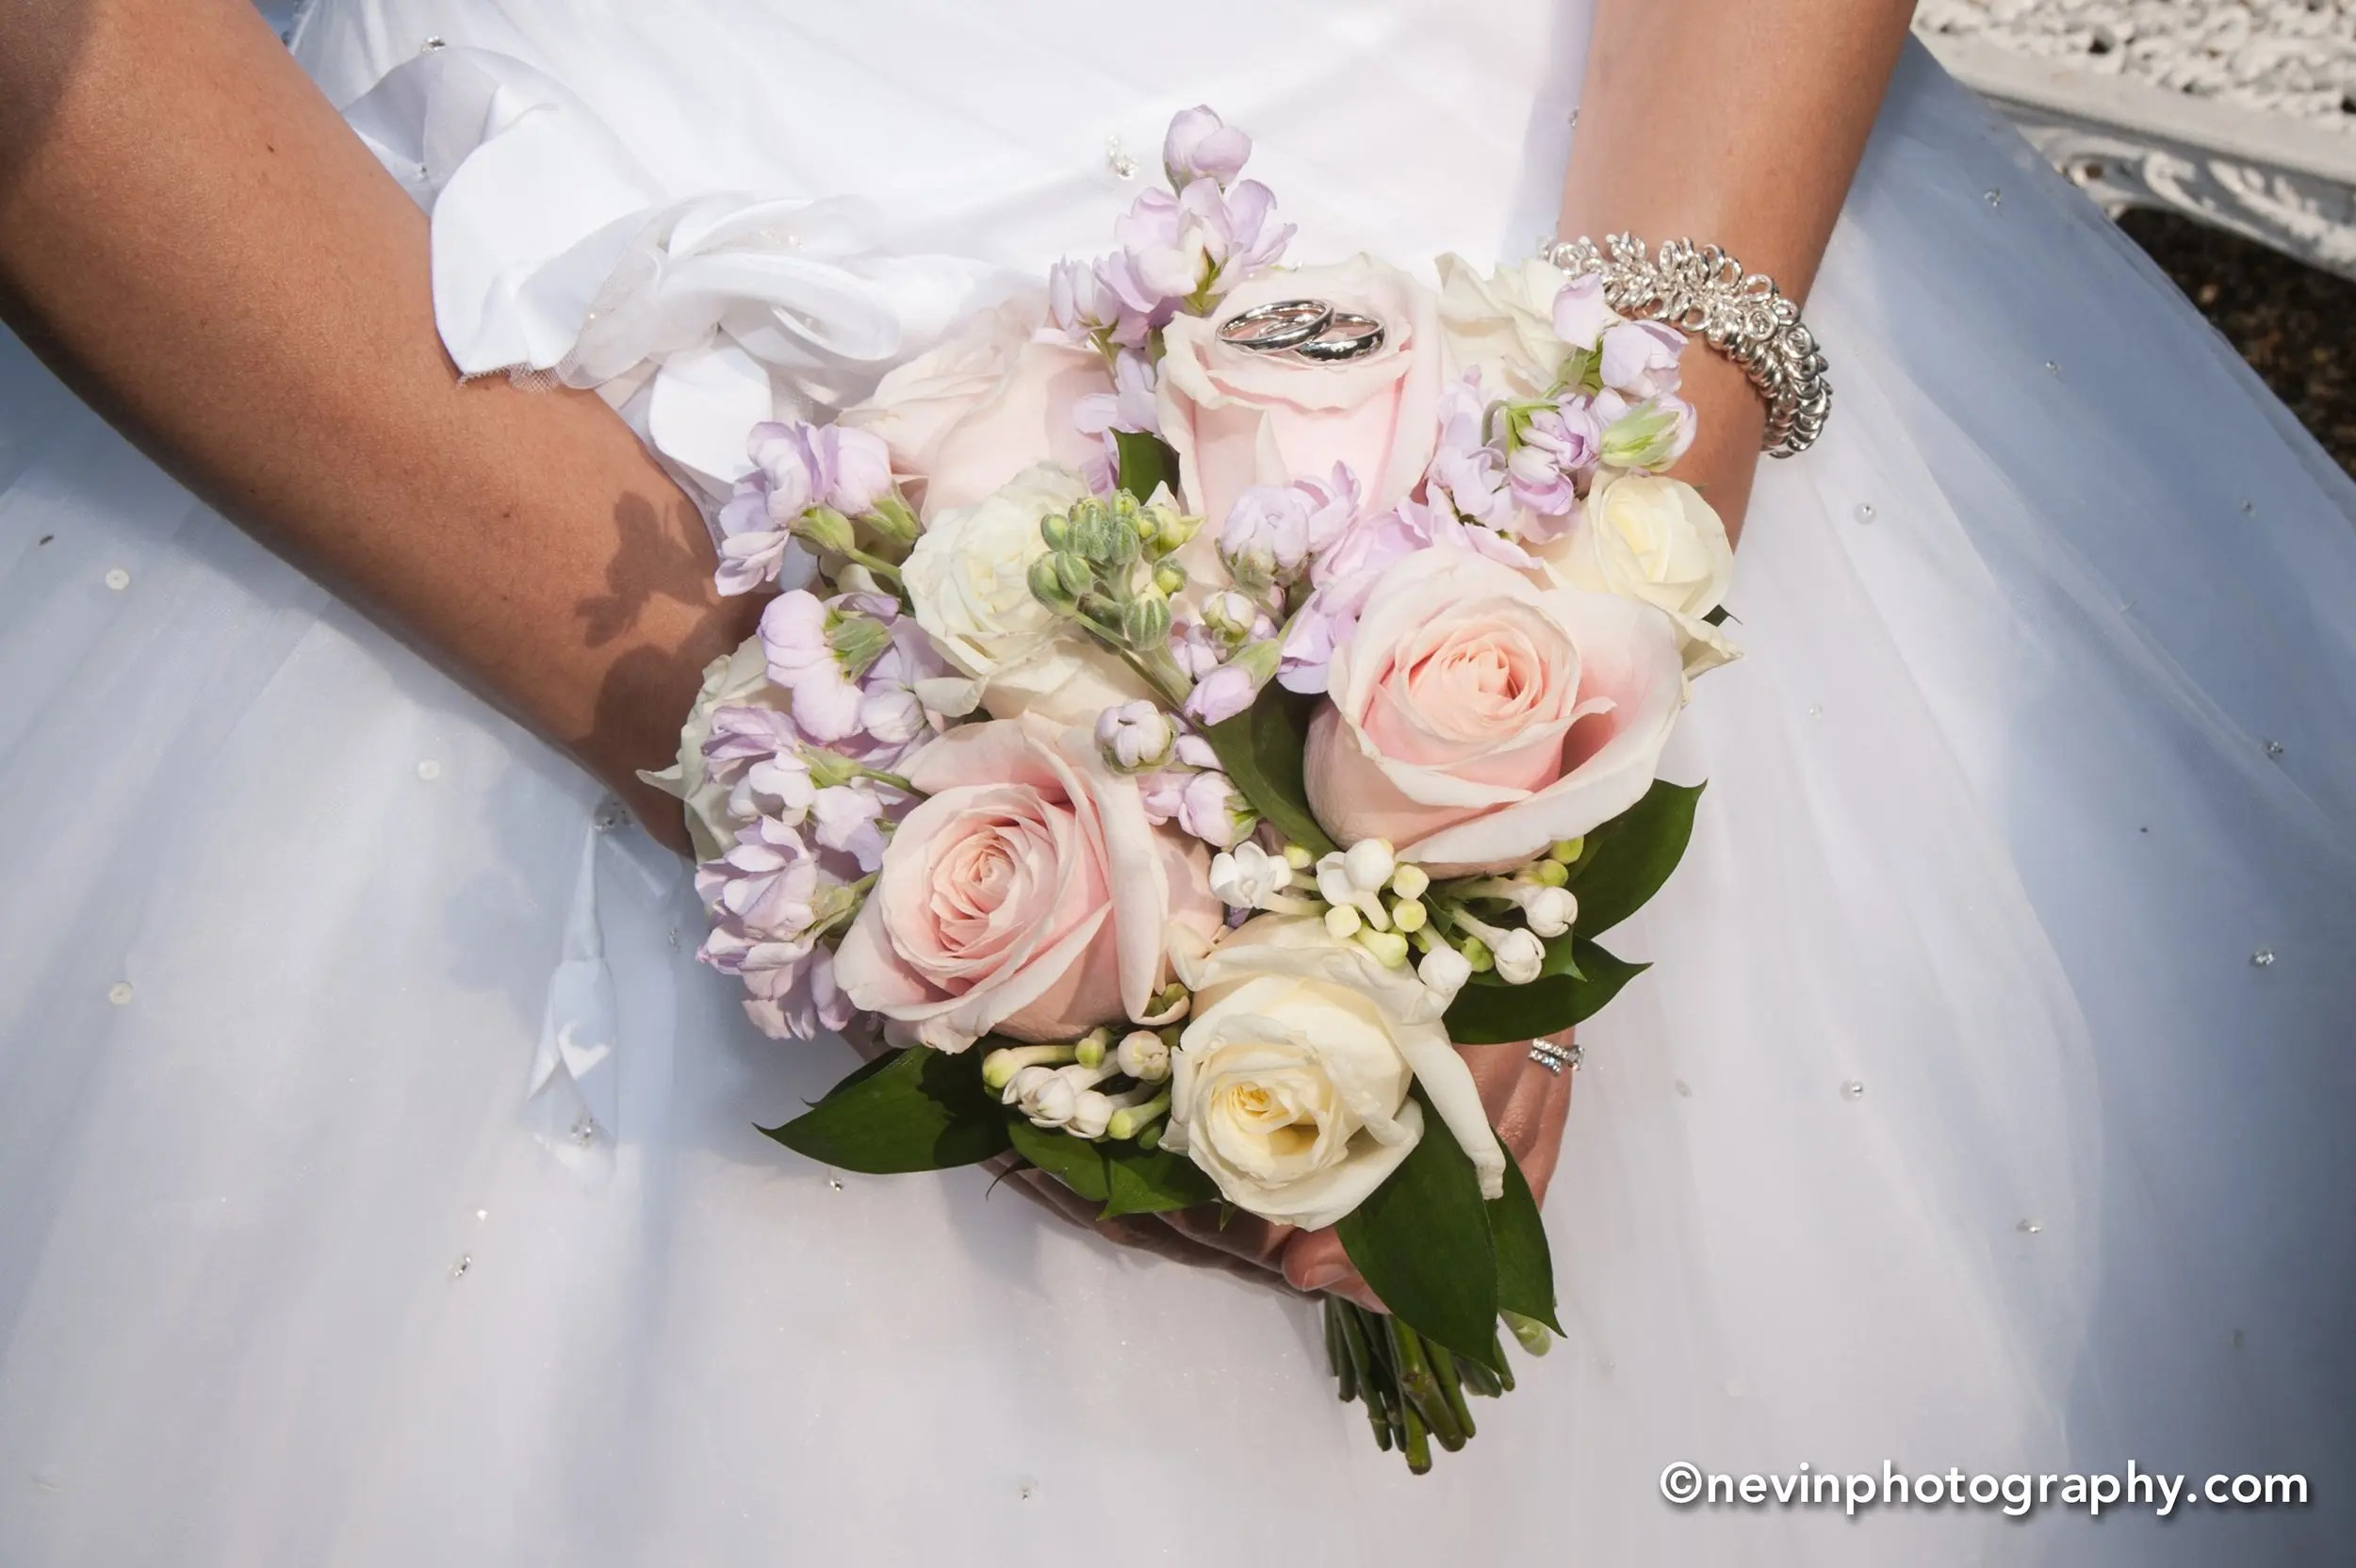 Close up of brides hands holding her flower bouquet with wedding rings on top